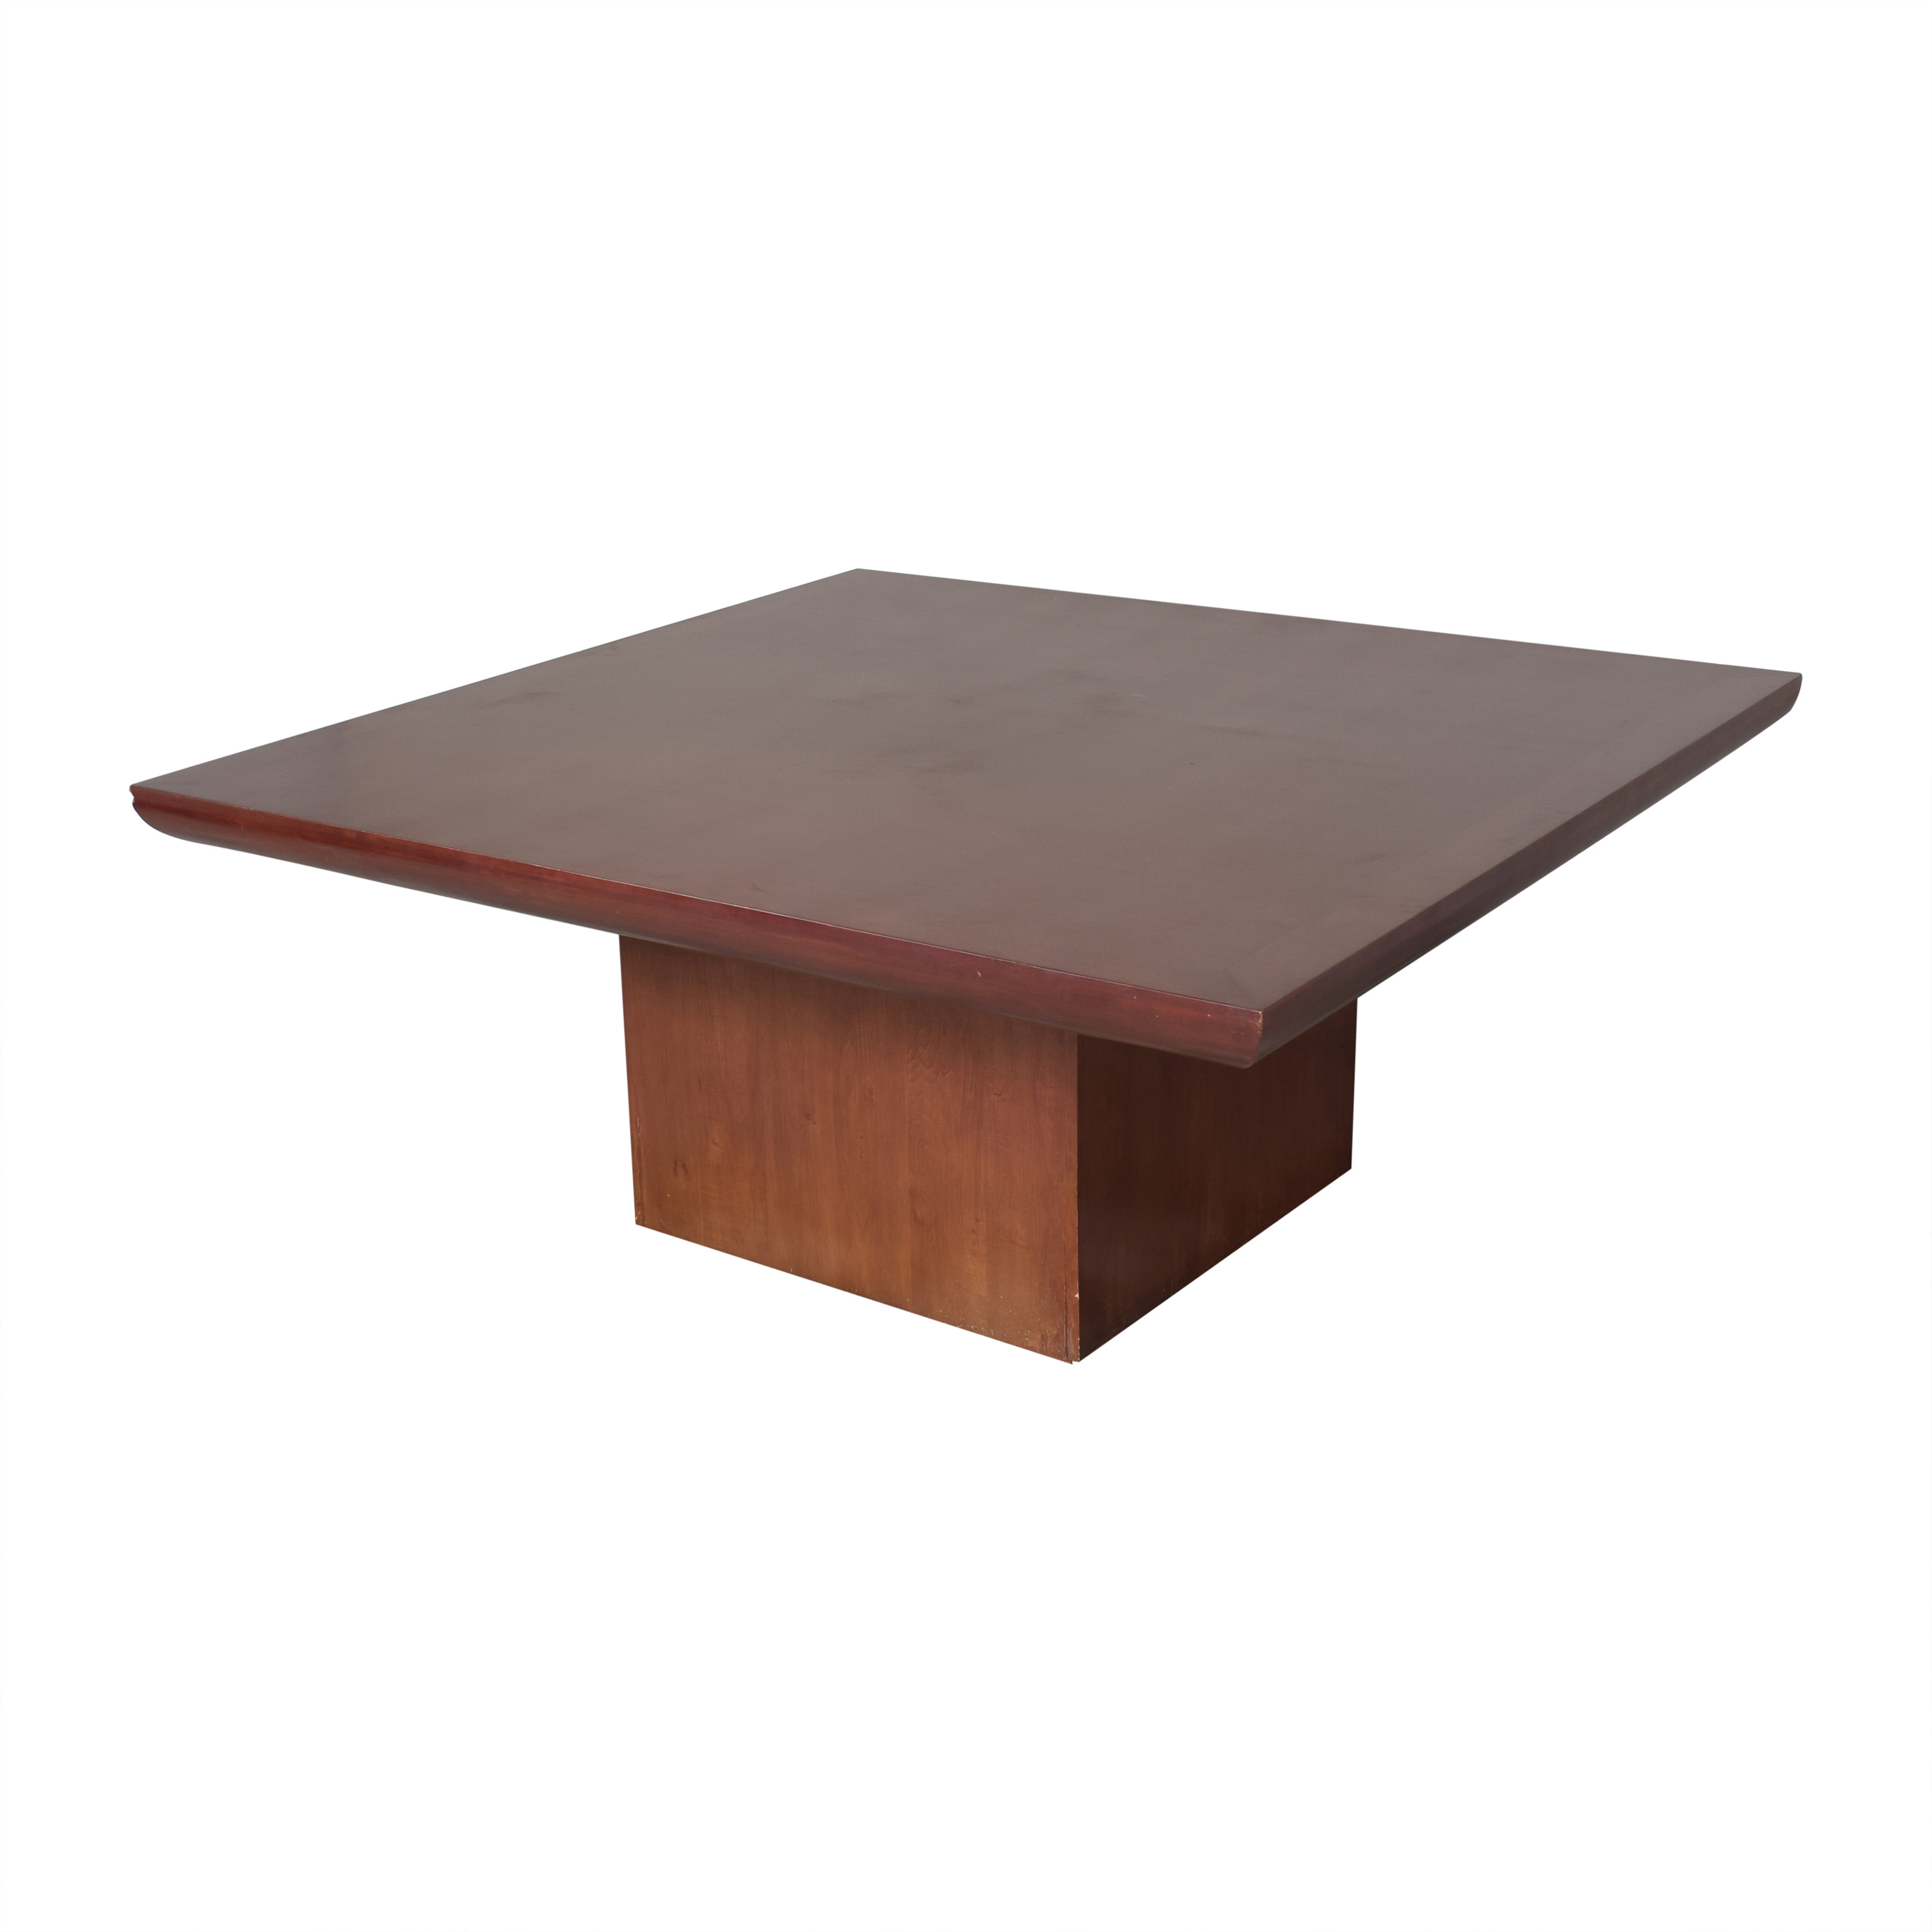 Terres Terres Square Dining Table for sale